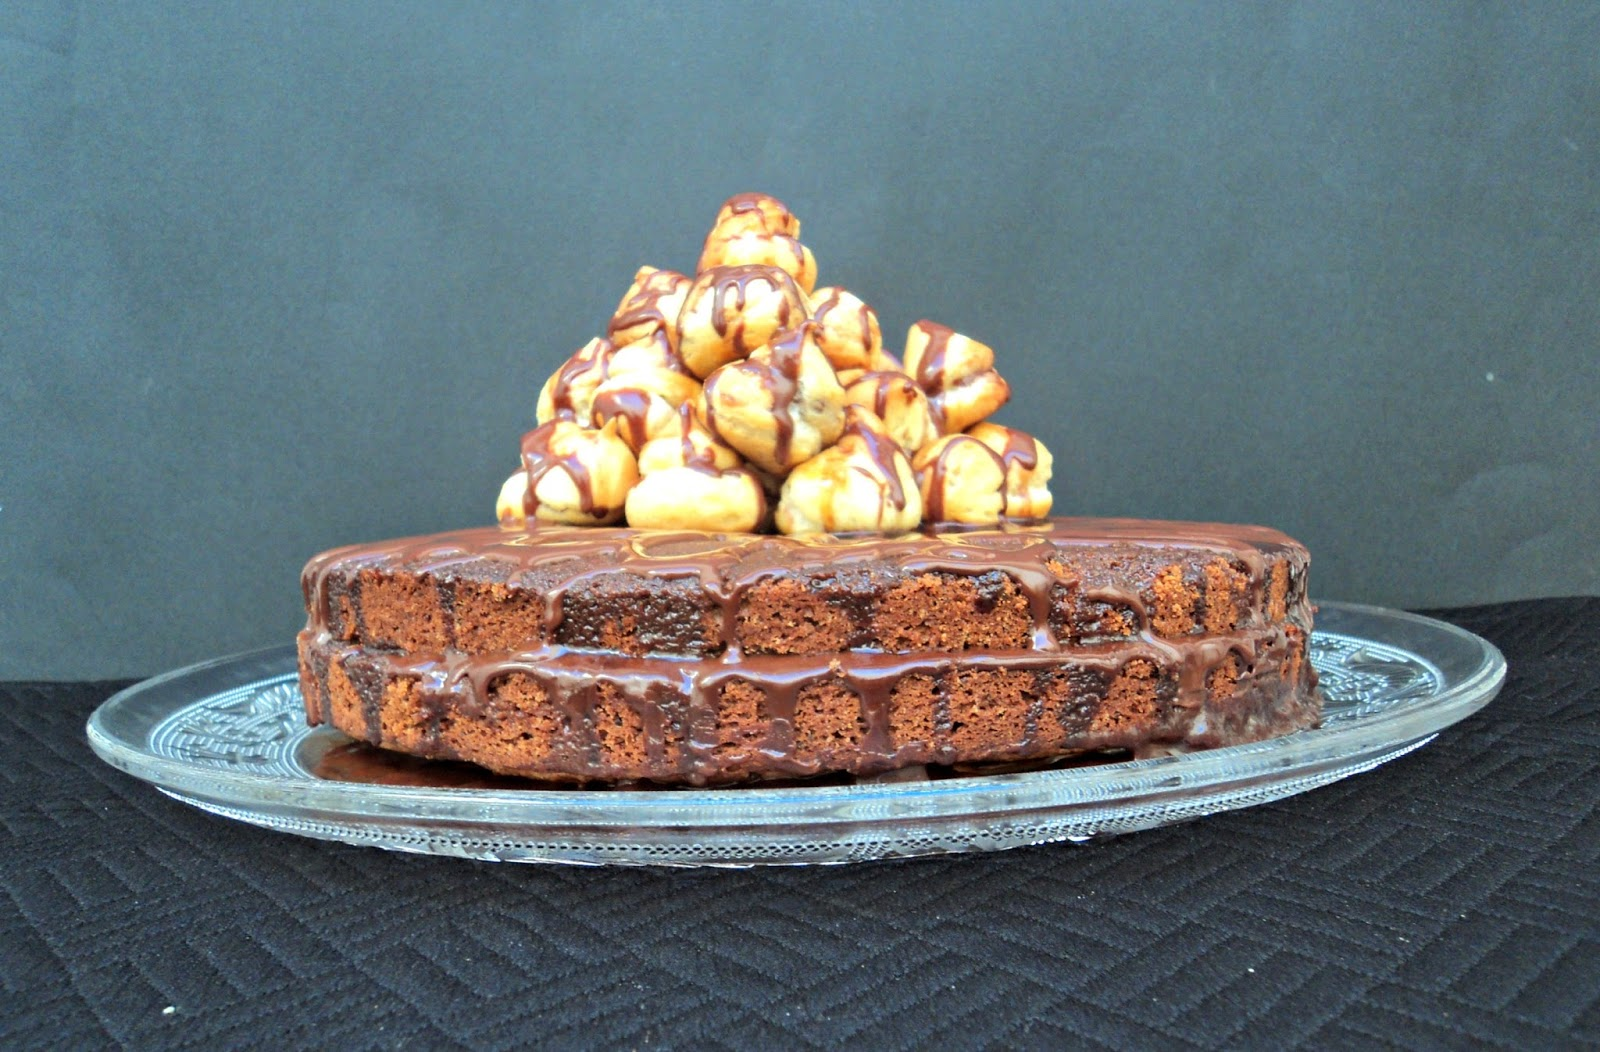 tarta-chocolate-cafe-profiteroles-lado